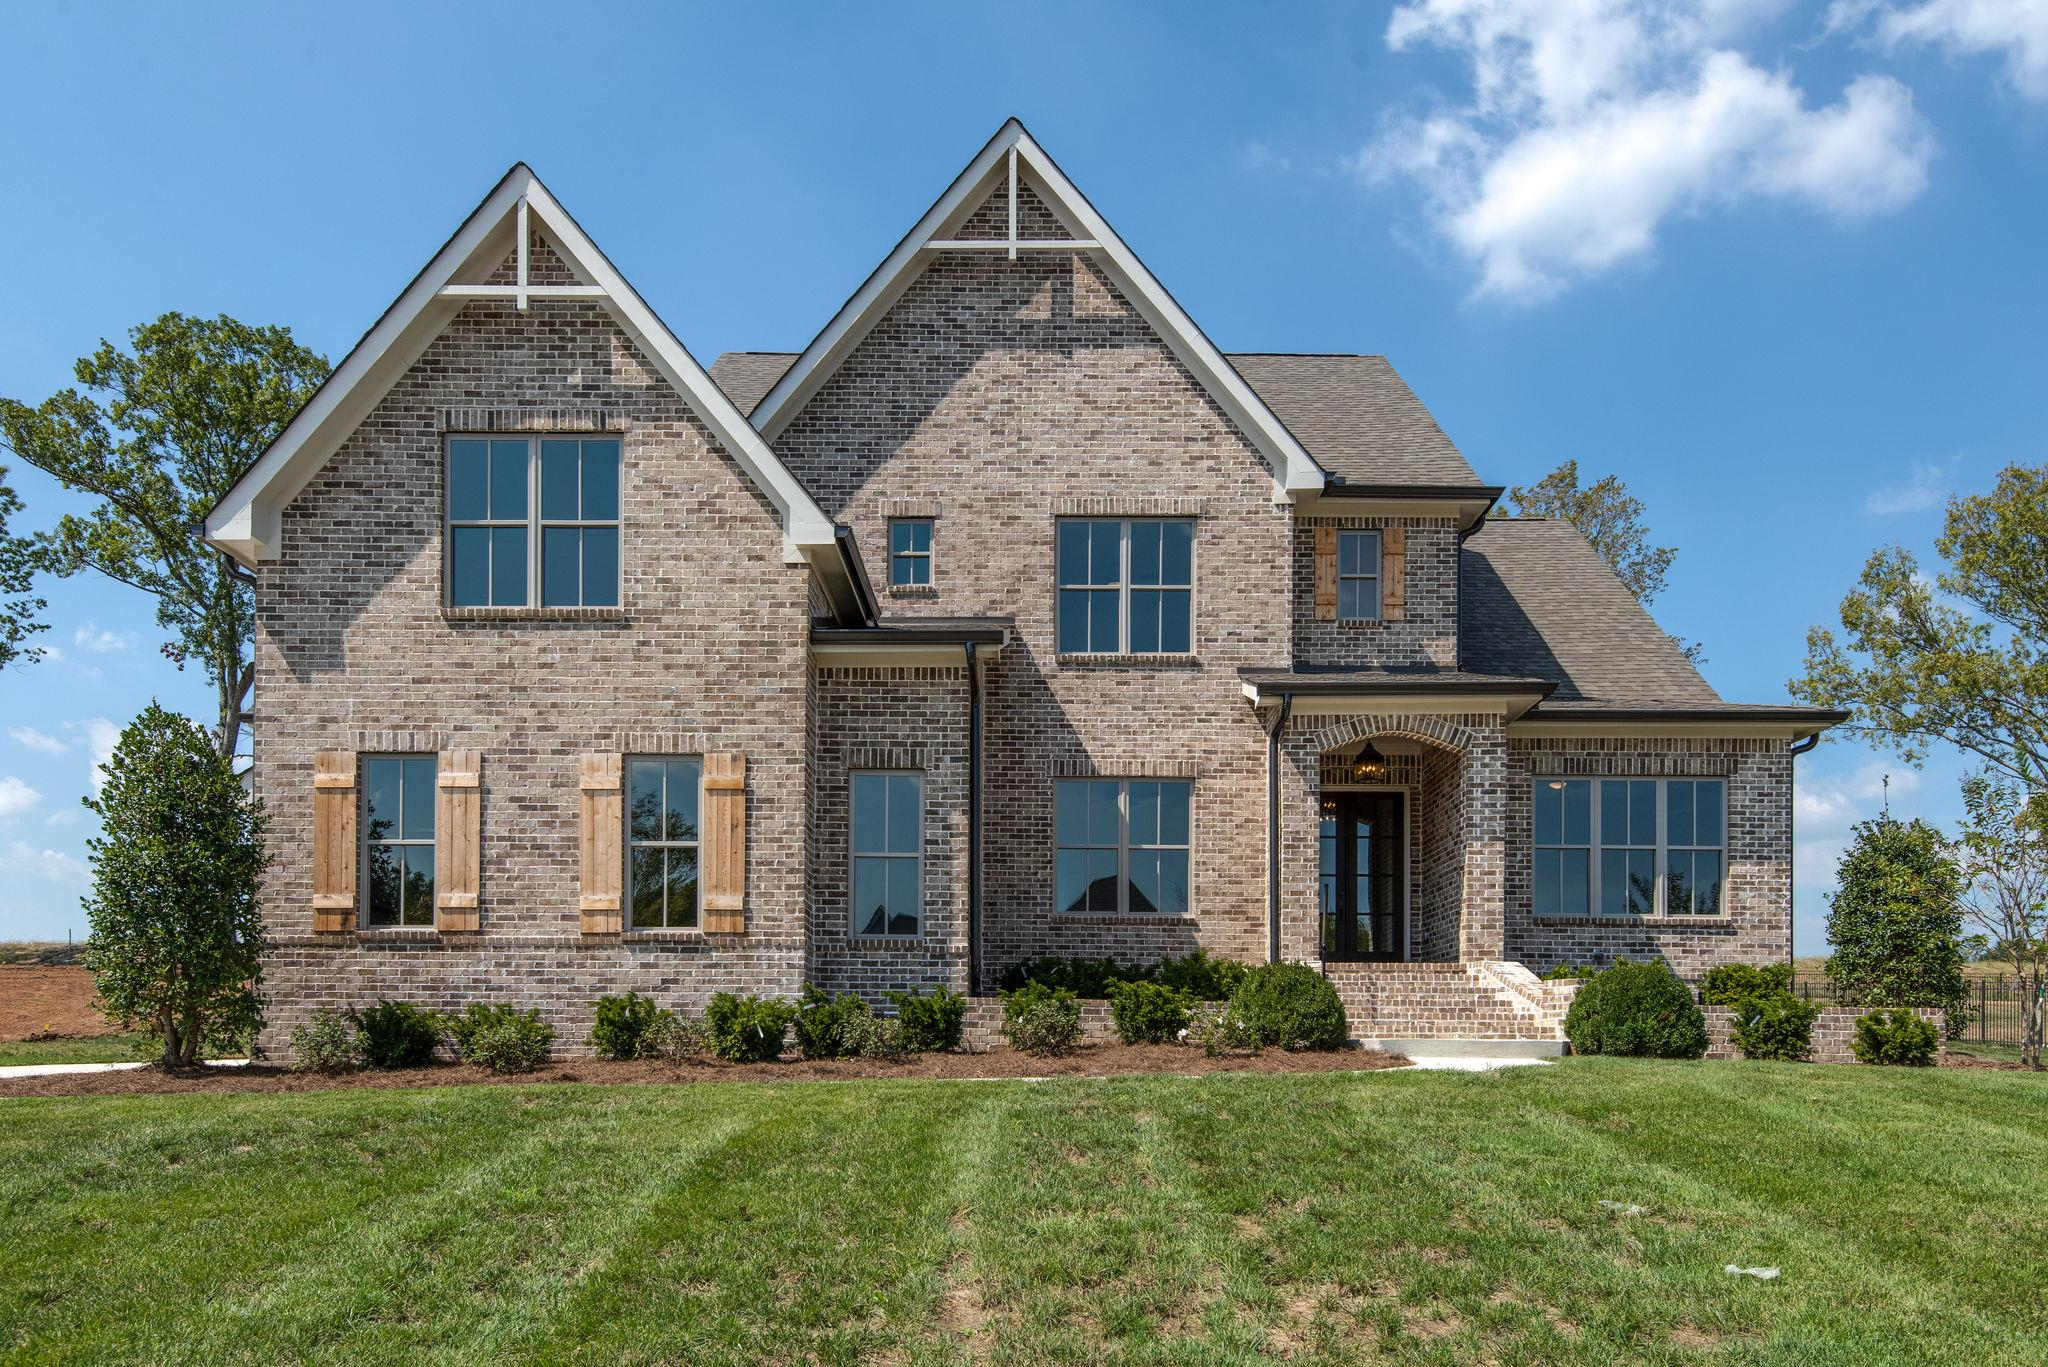 104 Hadley Reserve Ct *Lot 2*, one of homes for sale in Nolensville